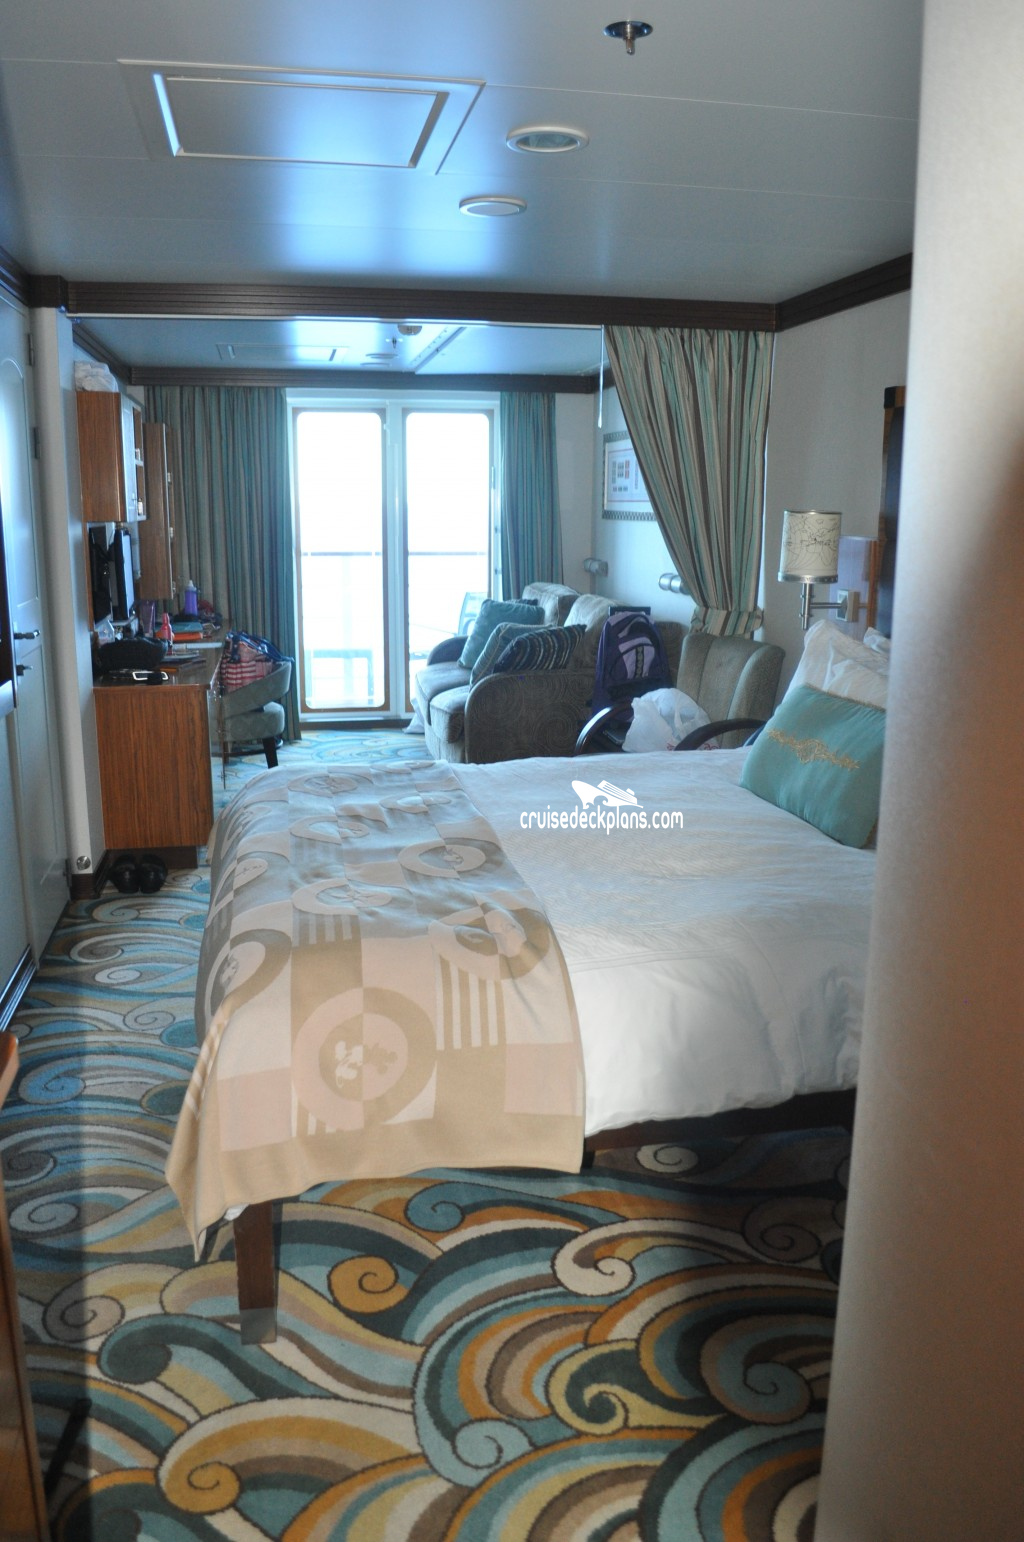 Concierge stateroom on celebrity eclipse reviews